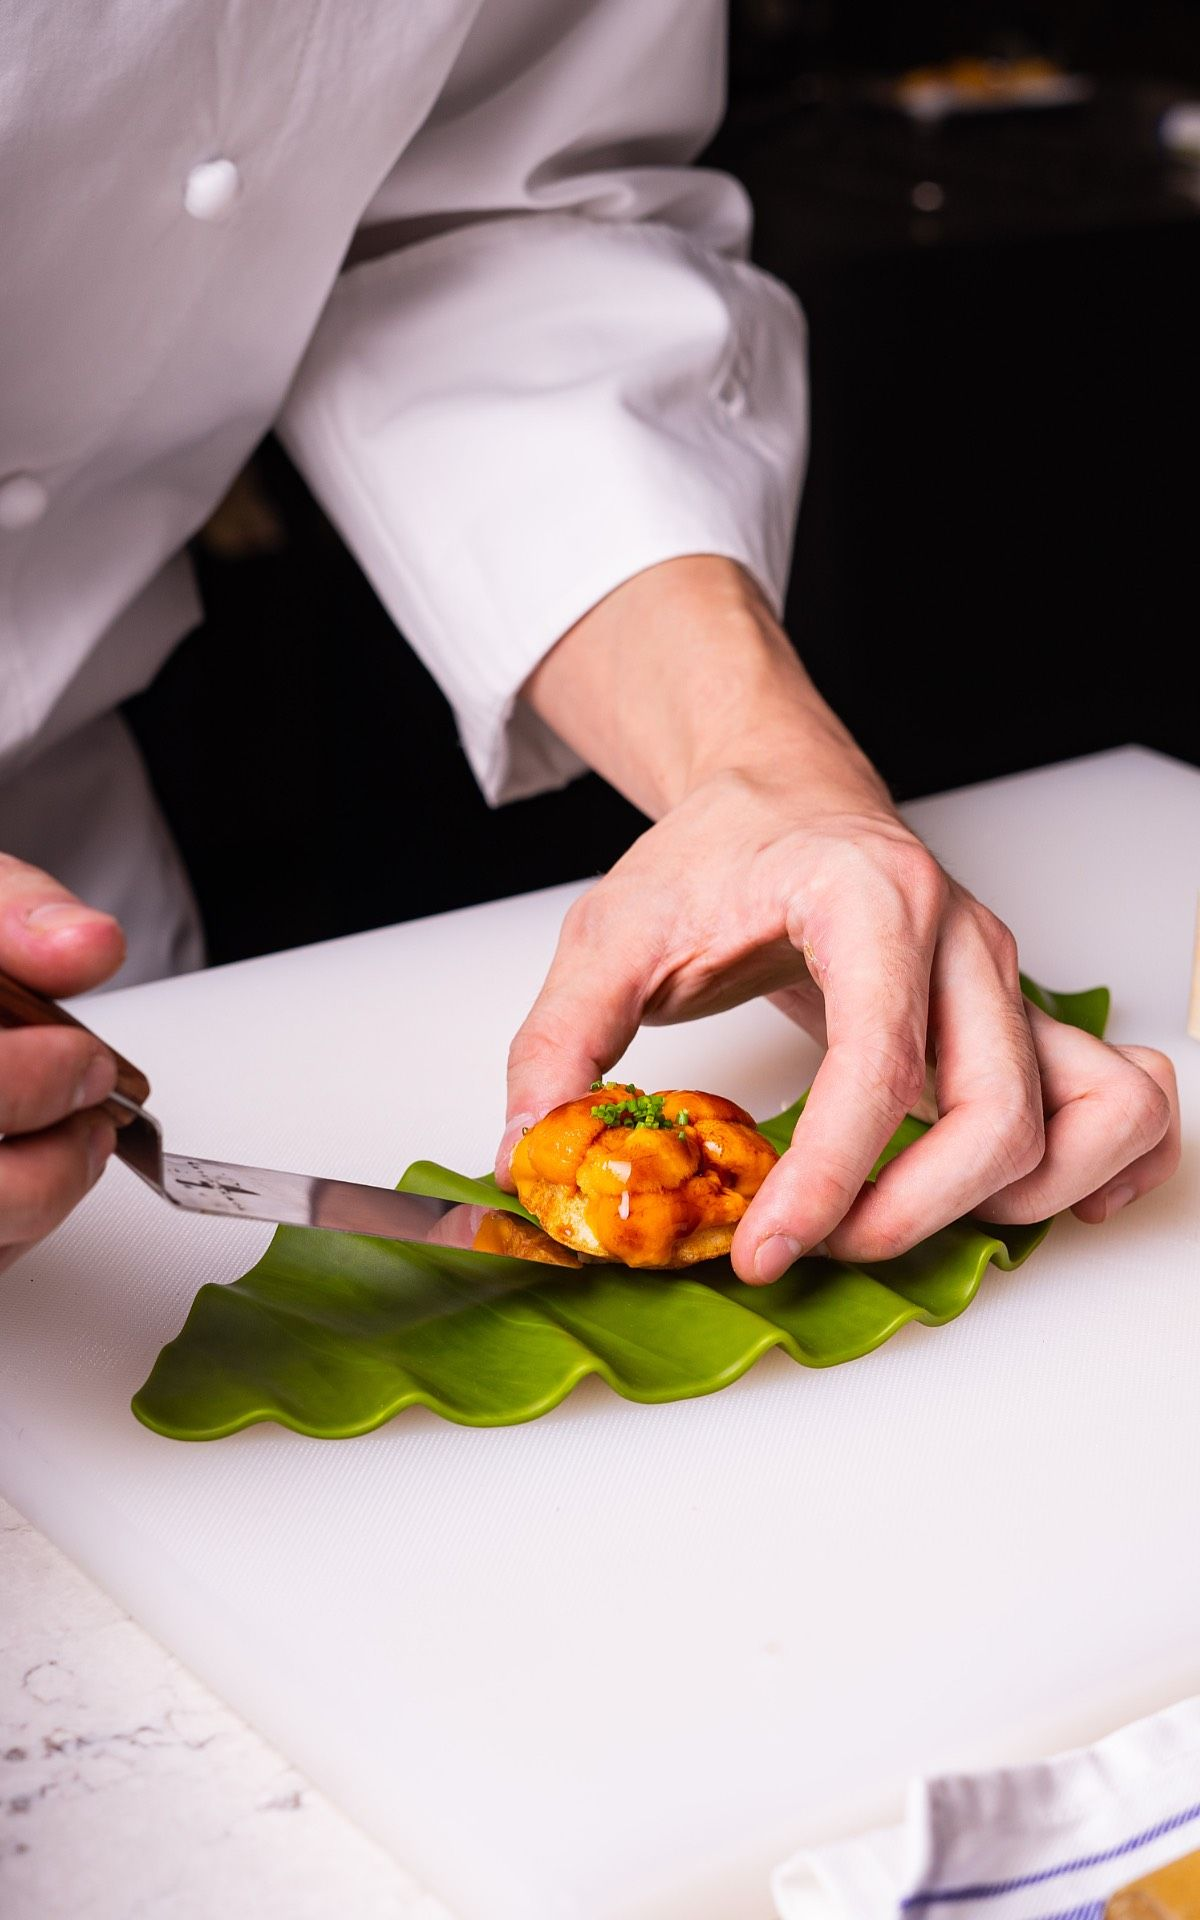 Hide, A New 10-Seat Fine Dining Restaurant In KL, Turns This Sceptic Into A Supporter